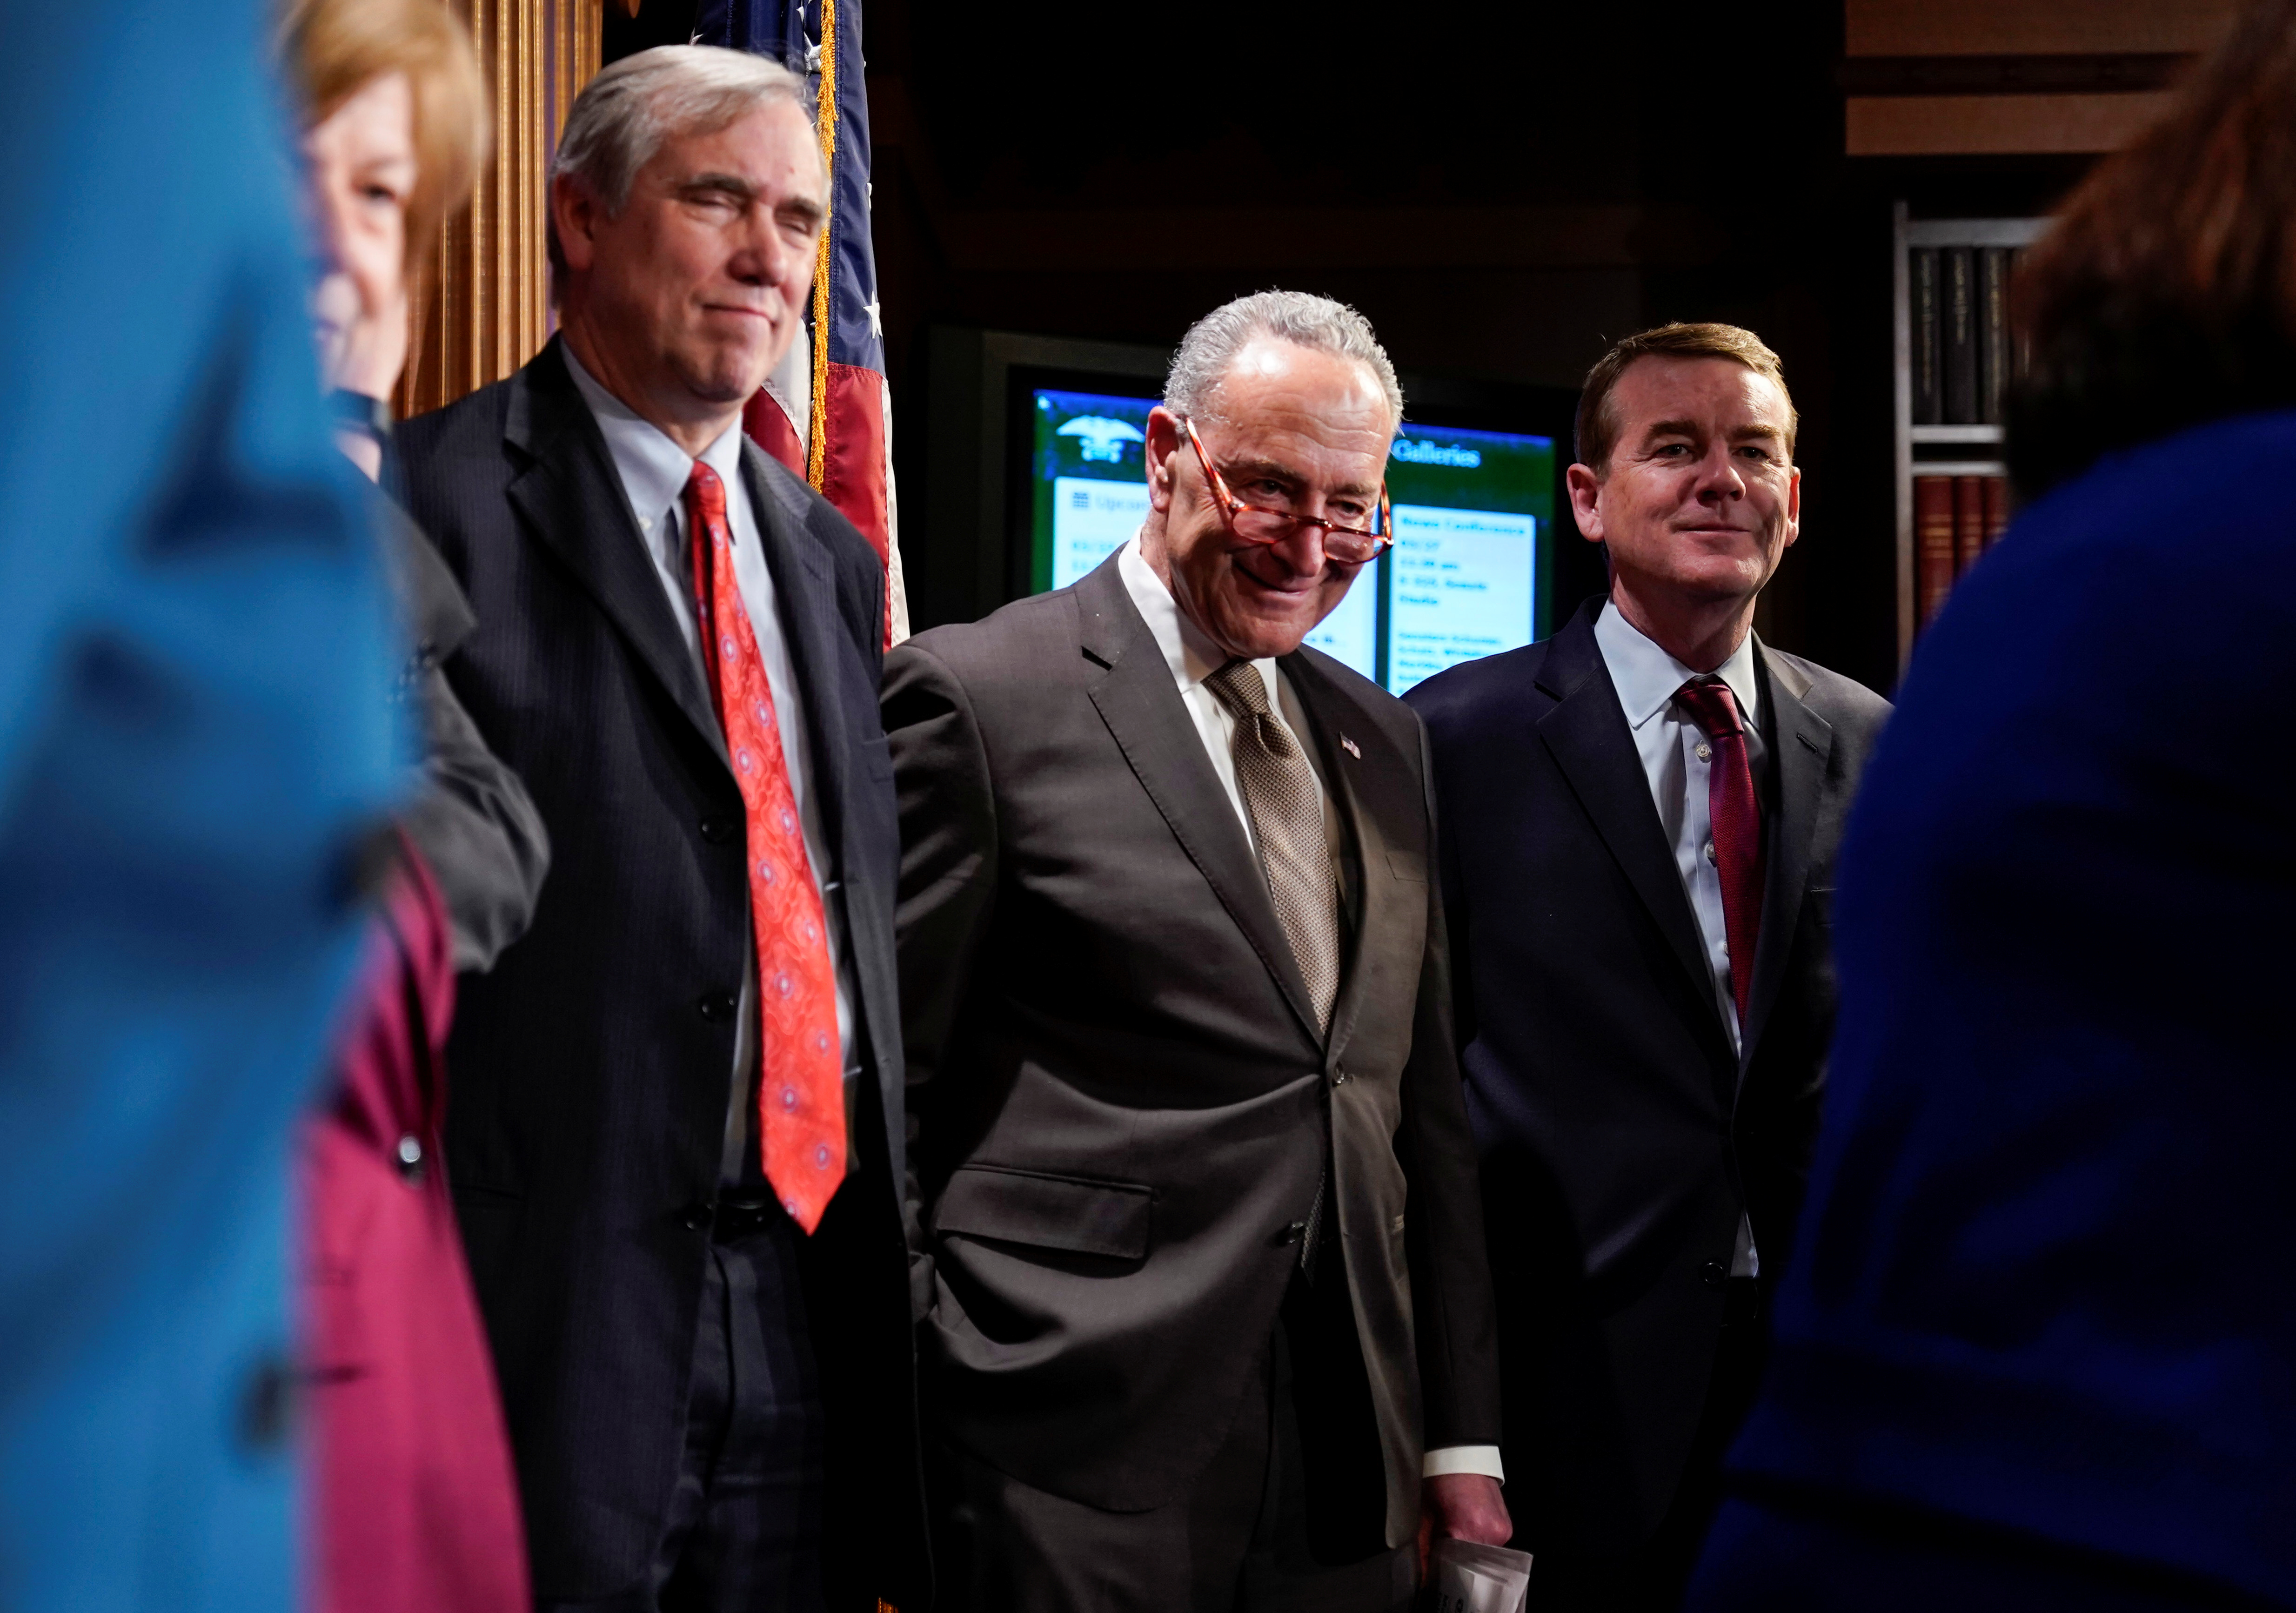 Senate Minority Leader Schumer stands with Senators Merkley and Bennett during Senate Democrats' Special Committee on Climate Change announcement in Washington